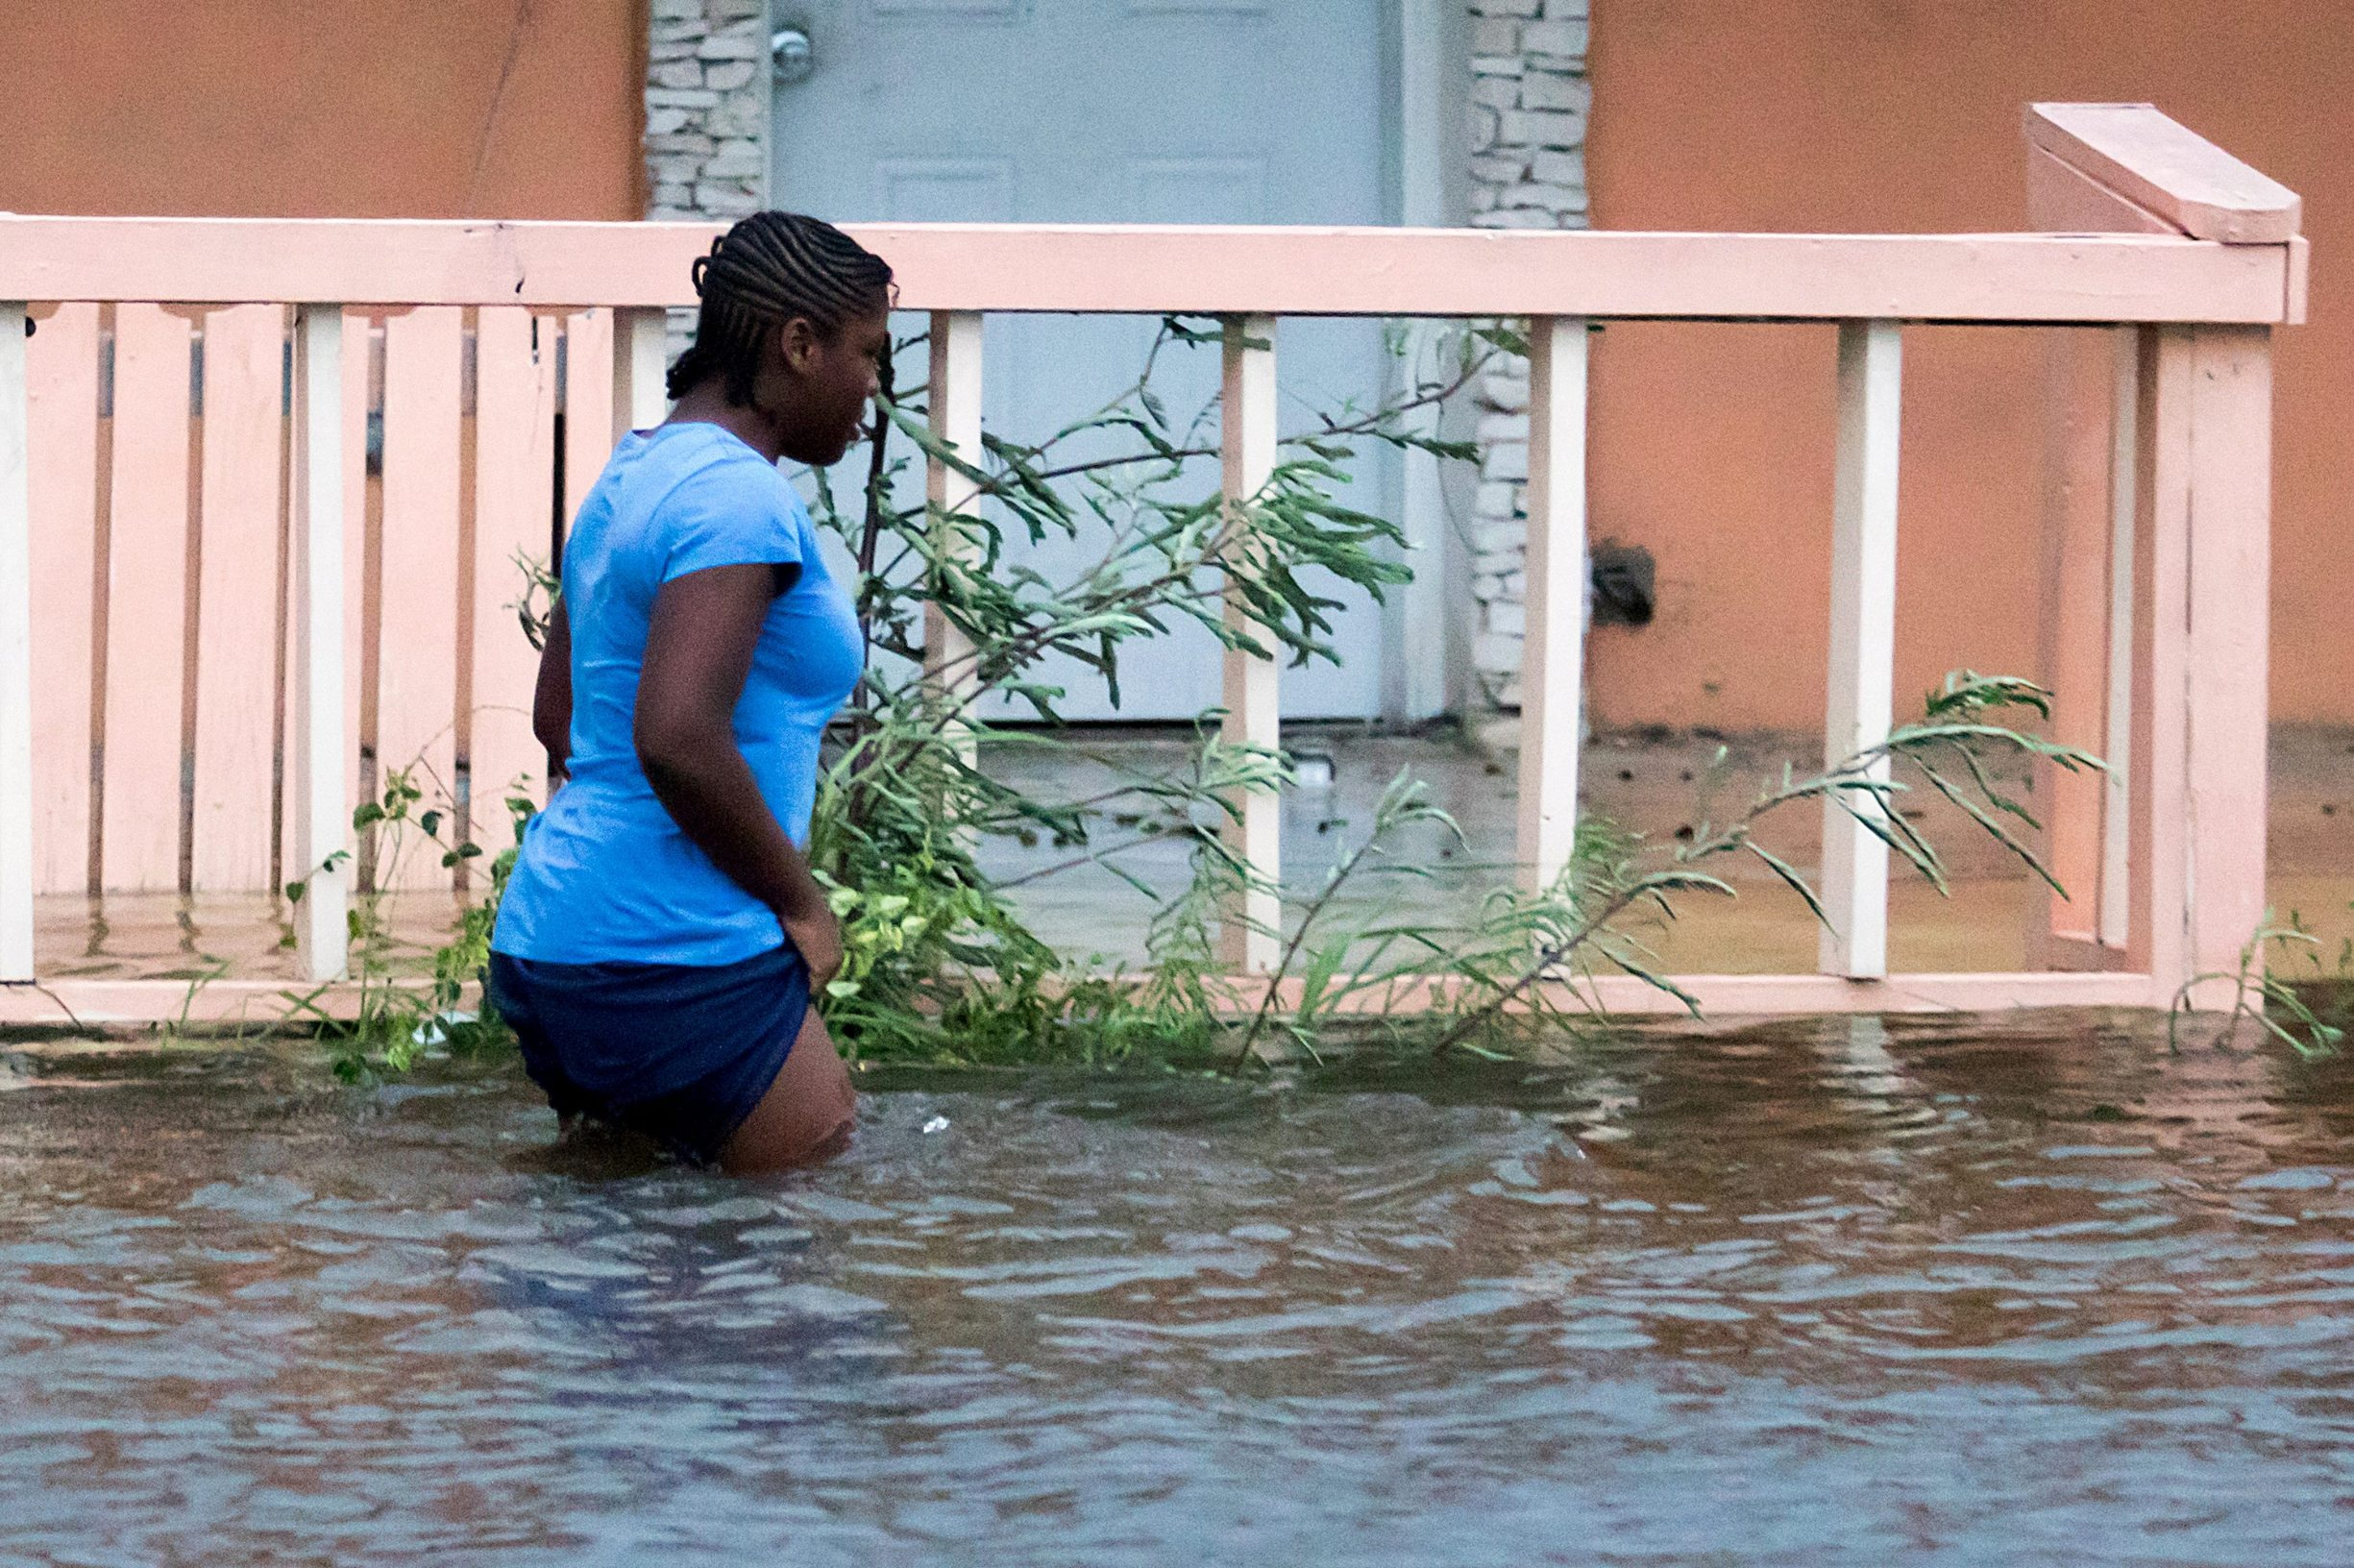 A woman walks in a flooded street after the effects of Hurricane Dorian arrived in Nassau, Bahamas, September 2, 2019. REUTERS/John Marc Nutt MANDATORY CREDIT. NO RESALES. NO ARCHIVES